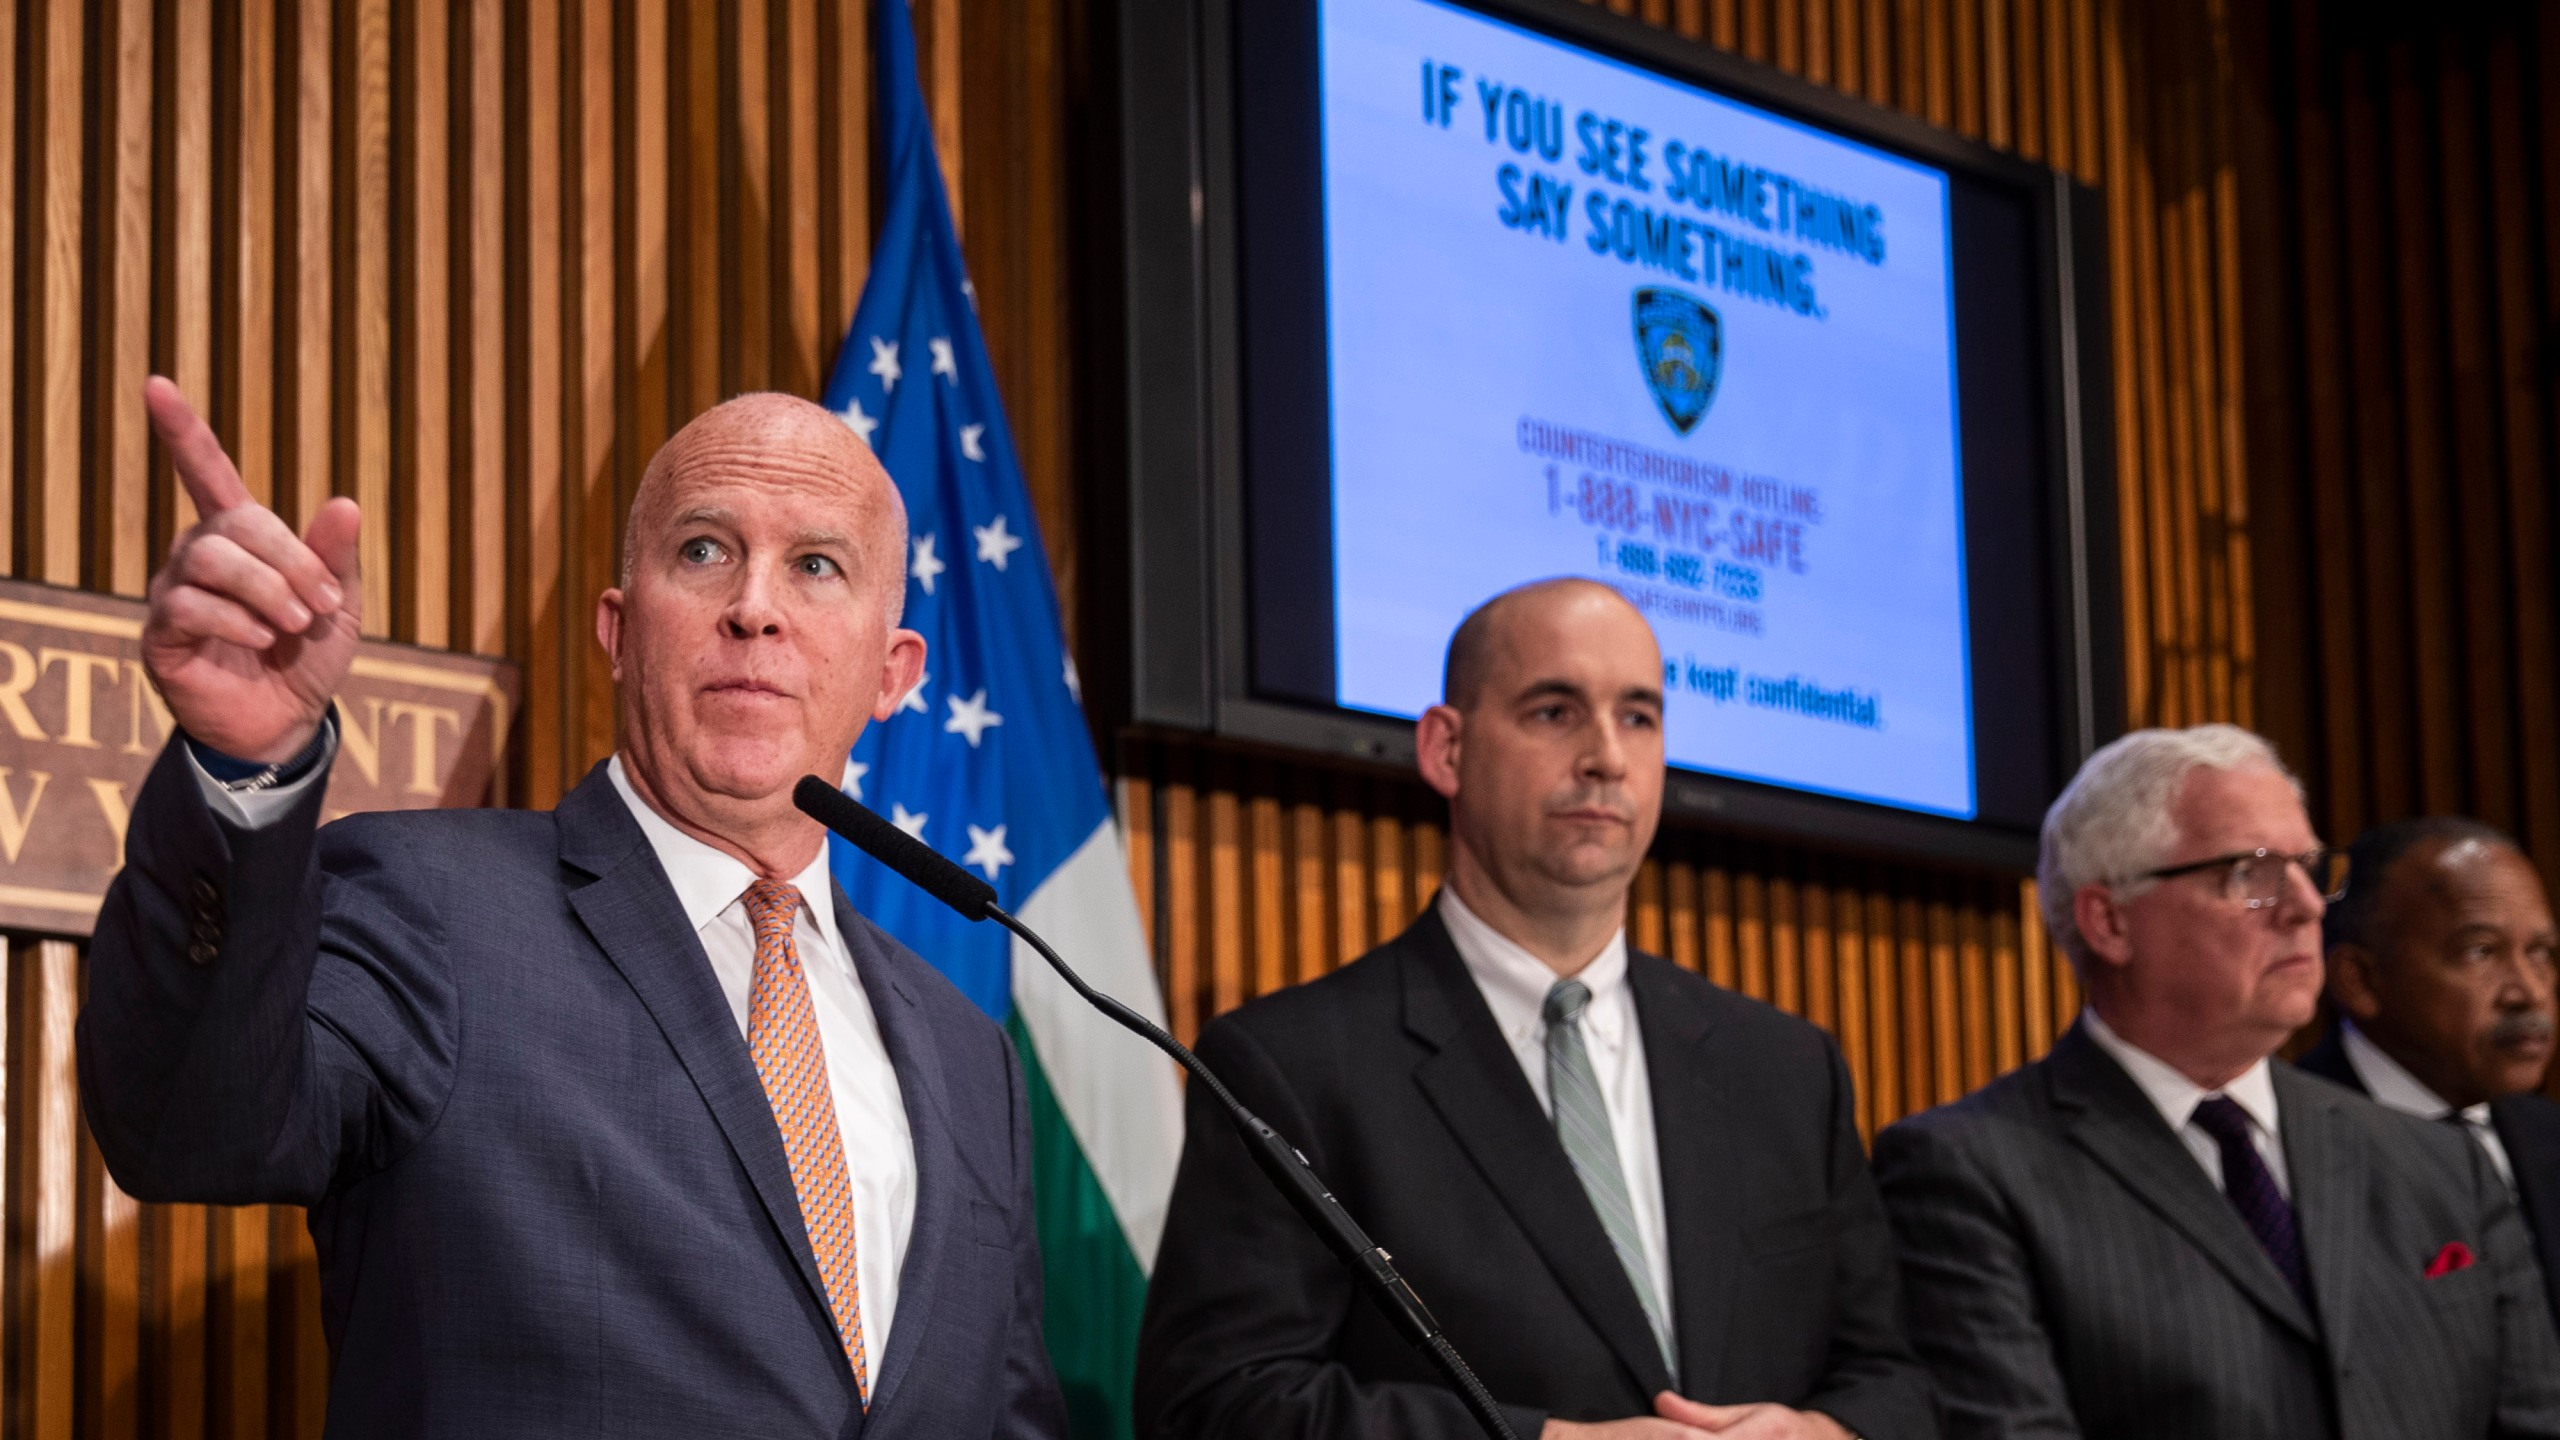 New York City Police Commissioner James O'Neill, left, leads a press conference regarding the recent package bombings, at NYPD headquarters, Oct. 25, 2018. (Credit: Drew Angerer/Getty Images)